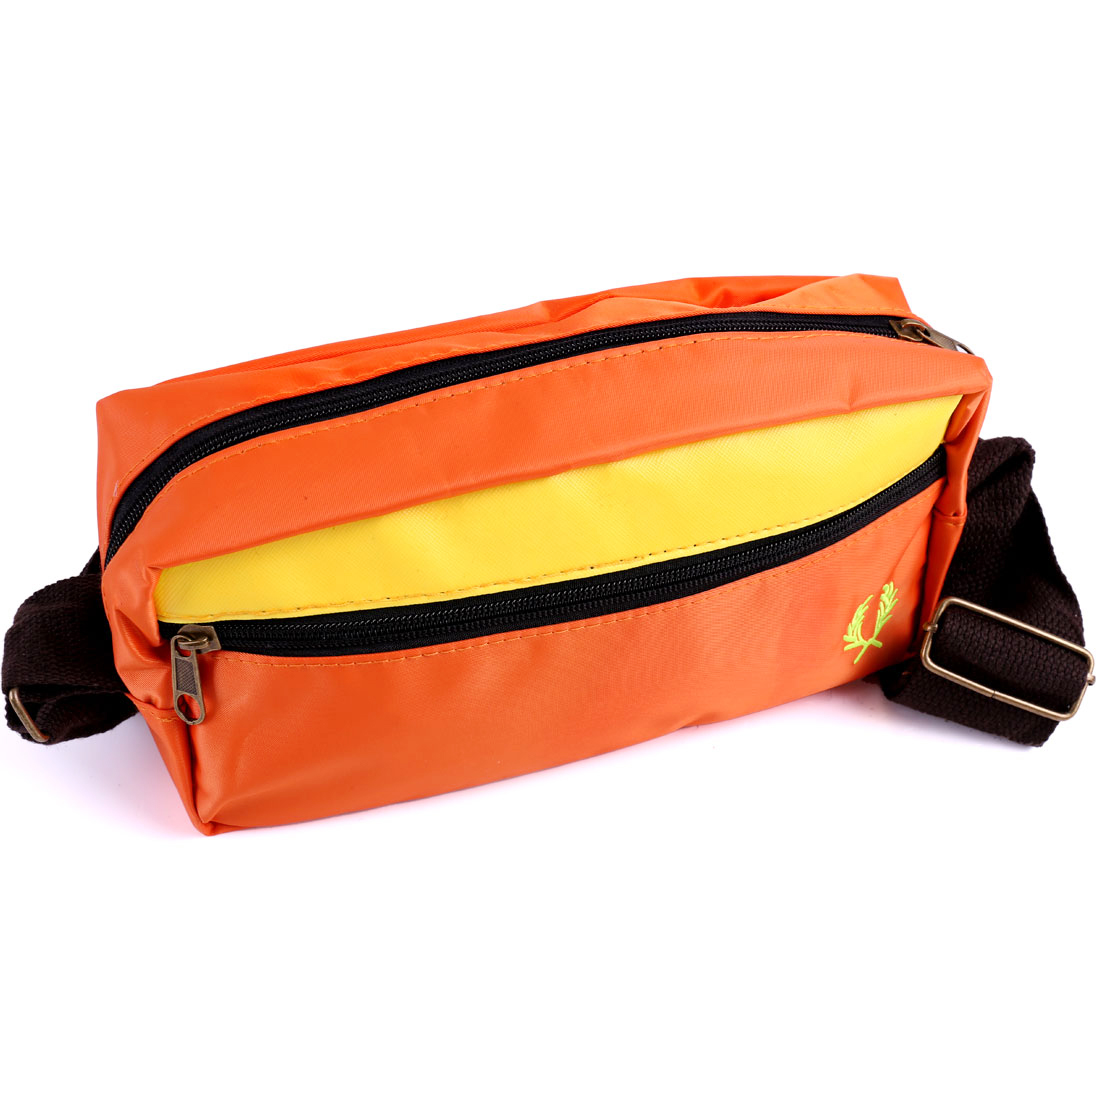 Men Adjustable Strap Zip Closure Panel Waist Bag Orange Yellow